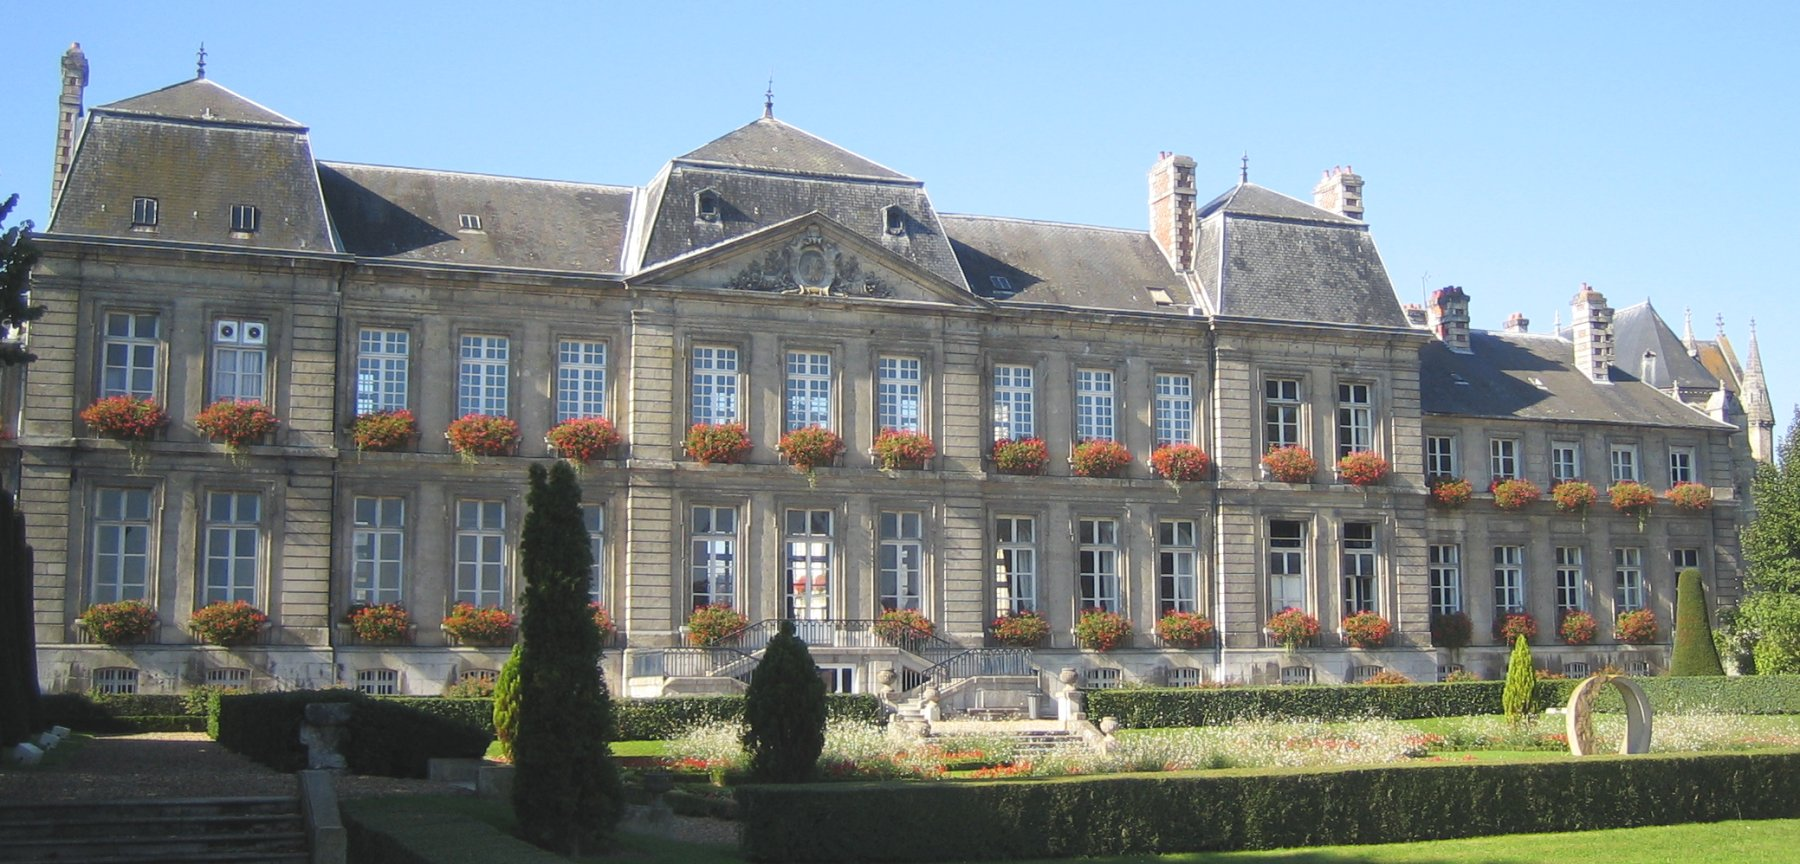 Soissons France  city images : Bestand Bestandsgeschiedenis Bestandsgebruik Globaal bestandsgebruik